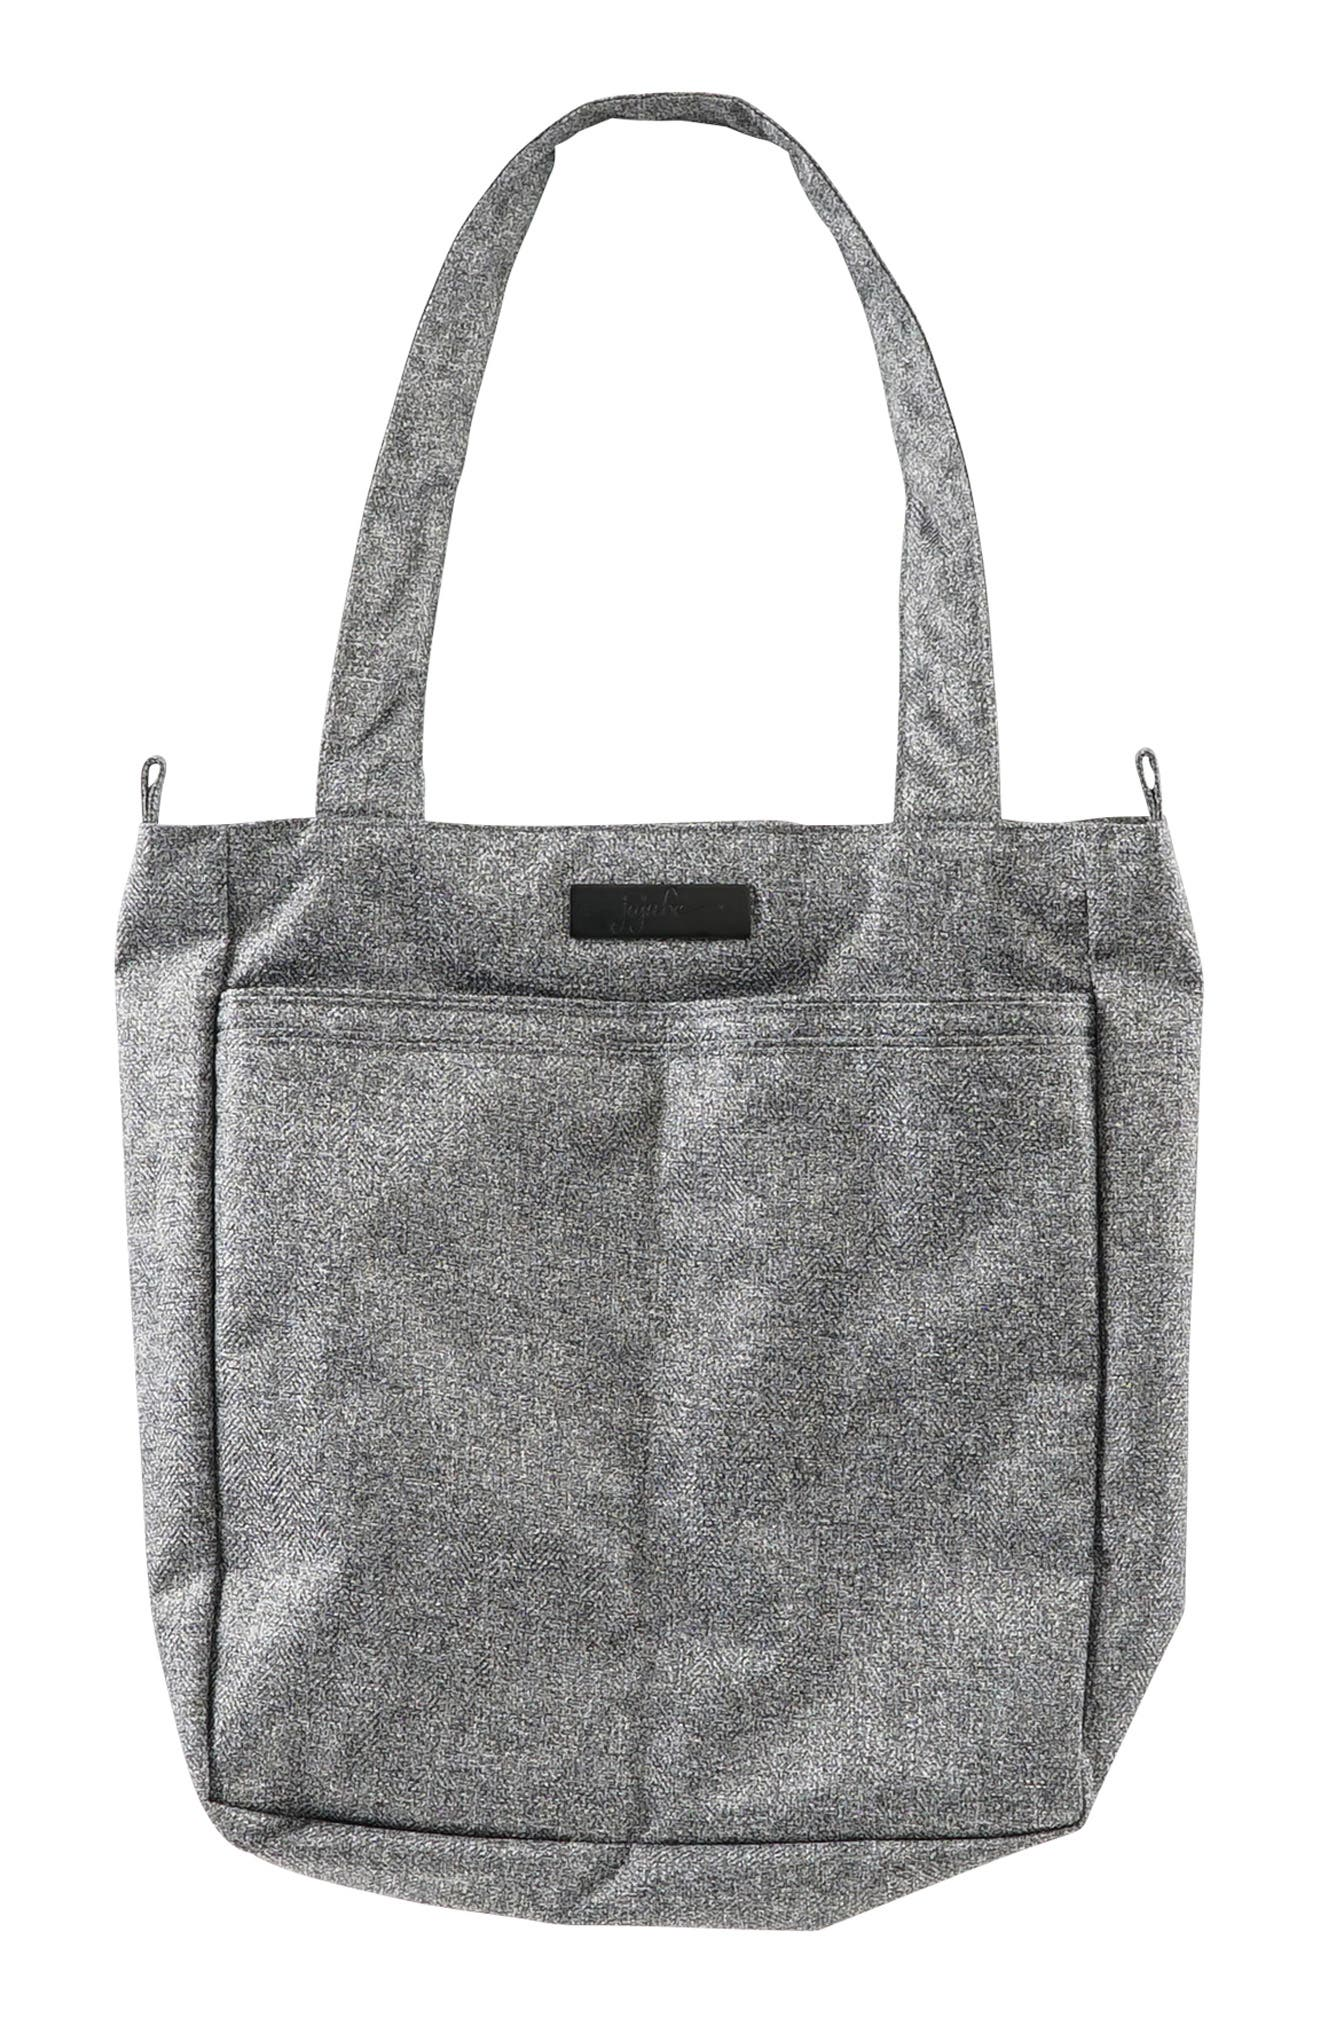 'Be Light - Onyx Collection' Diaper Bag,                             Main thumbnail 1, color,                             GRAY MATTER